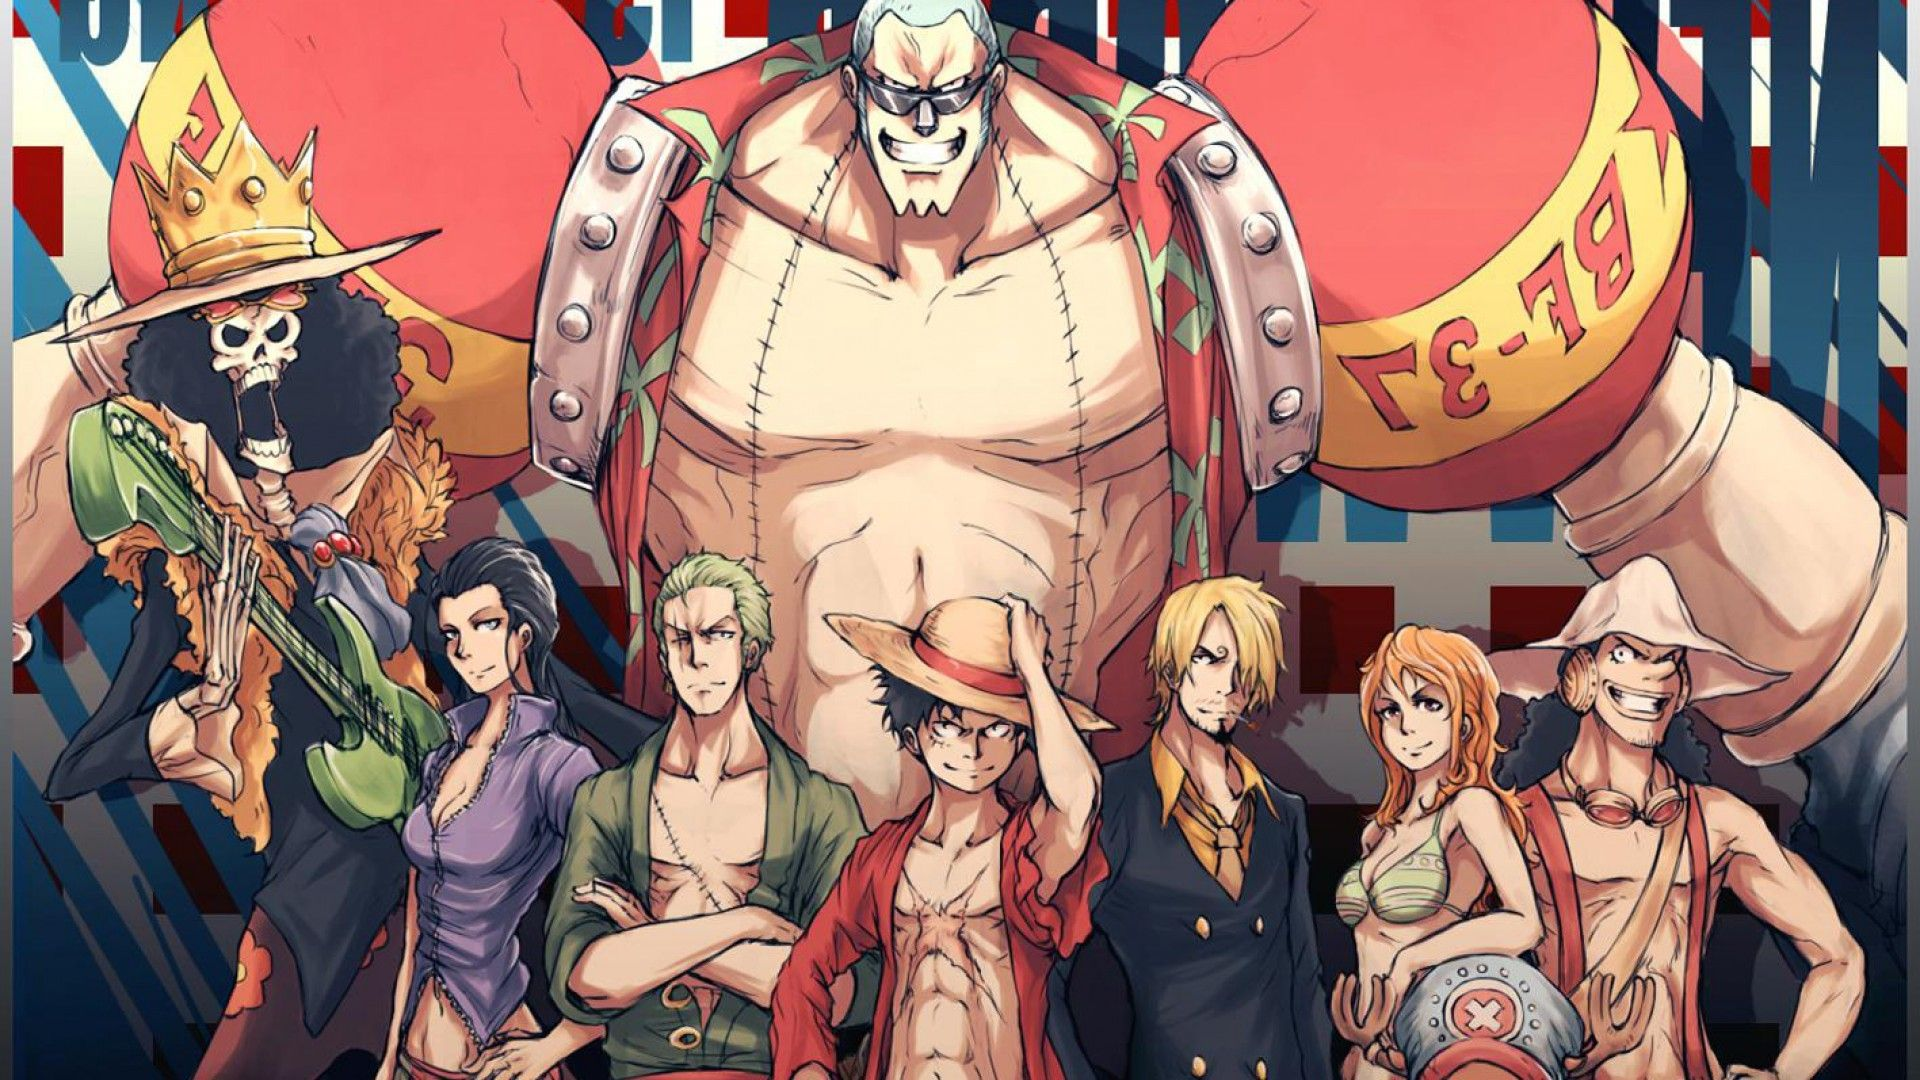 80 One Piece Wallpapers On Wallpaperplay Wallpaper Anime Gambar One Piece